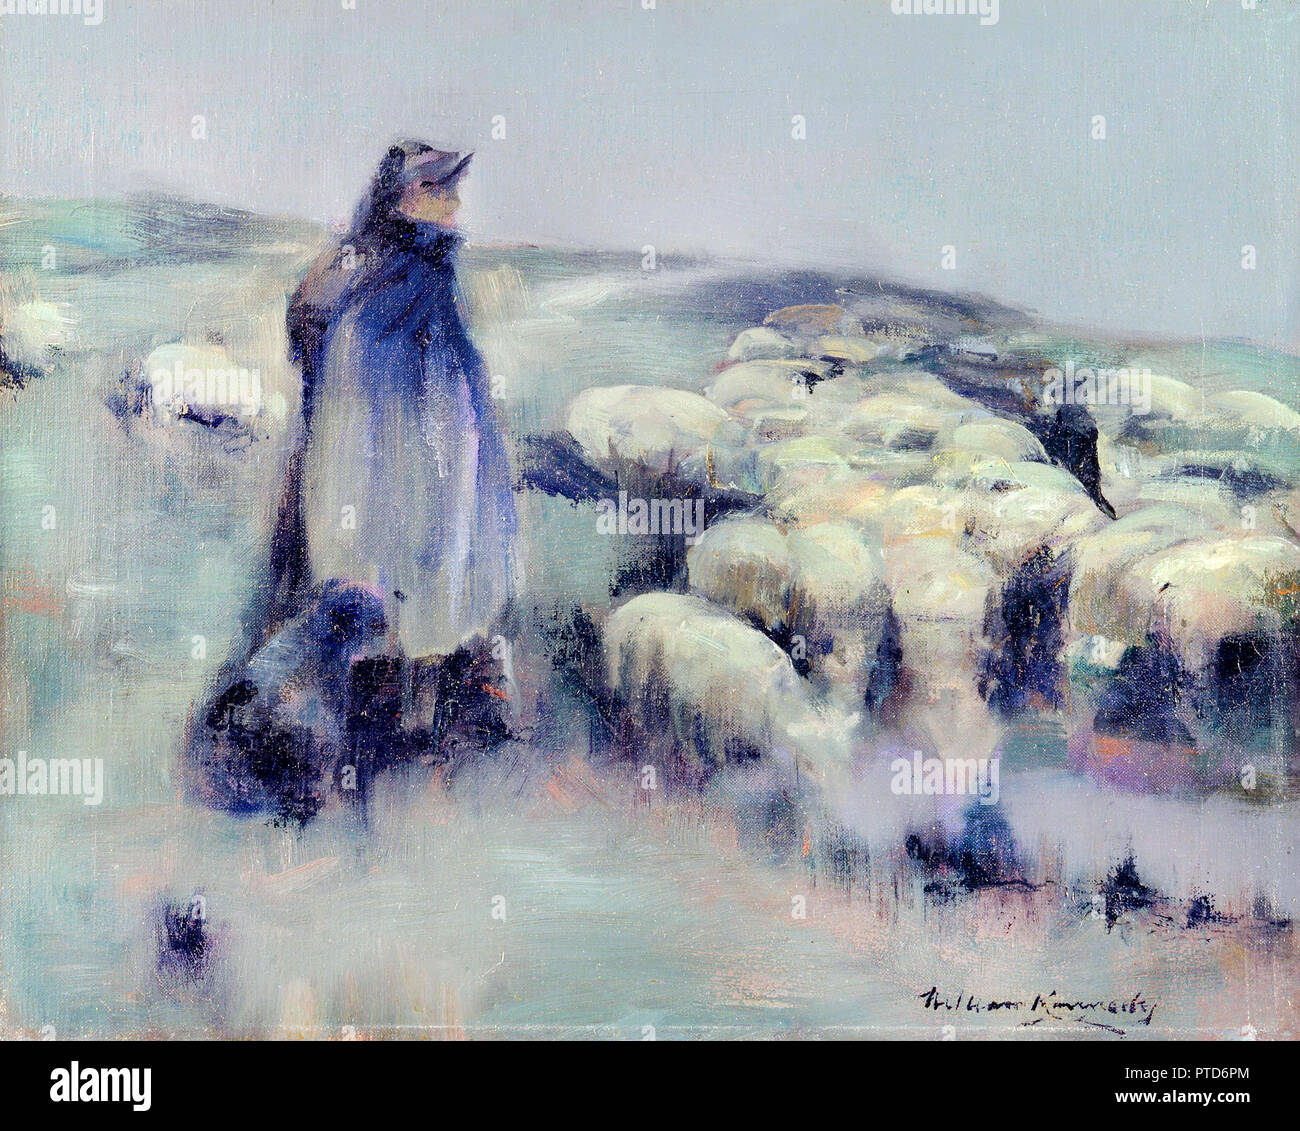 William Denholm Kennedy, A Shepherdess, Circa 1890-1895, Oil on canvas, Yale Center for British Art, New Haven, USA. - Stock Image